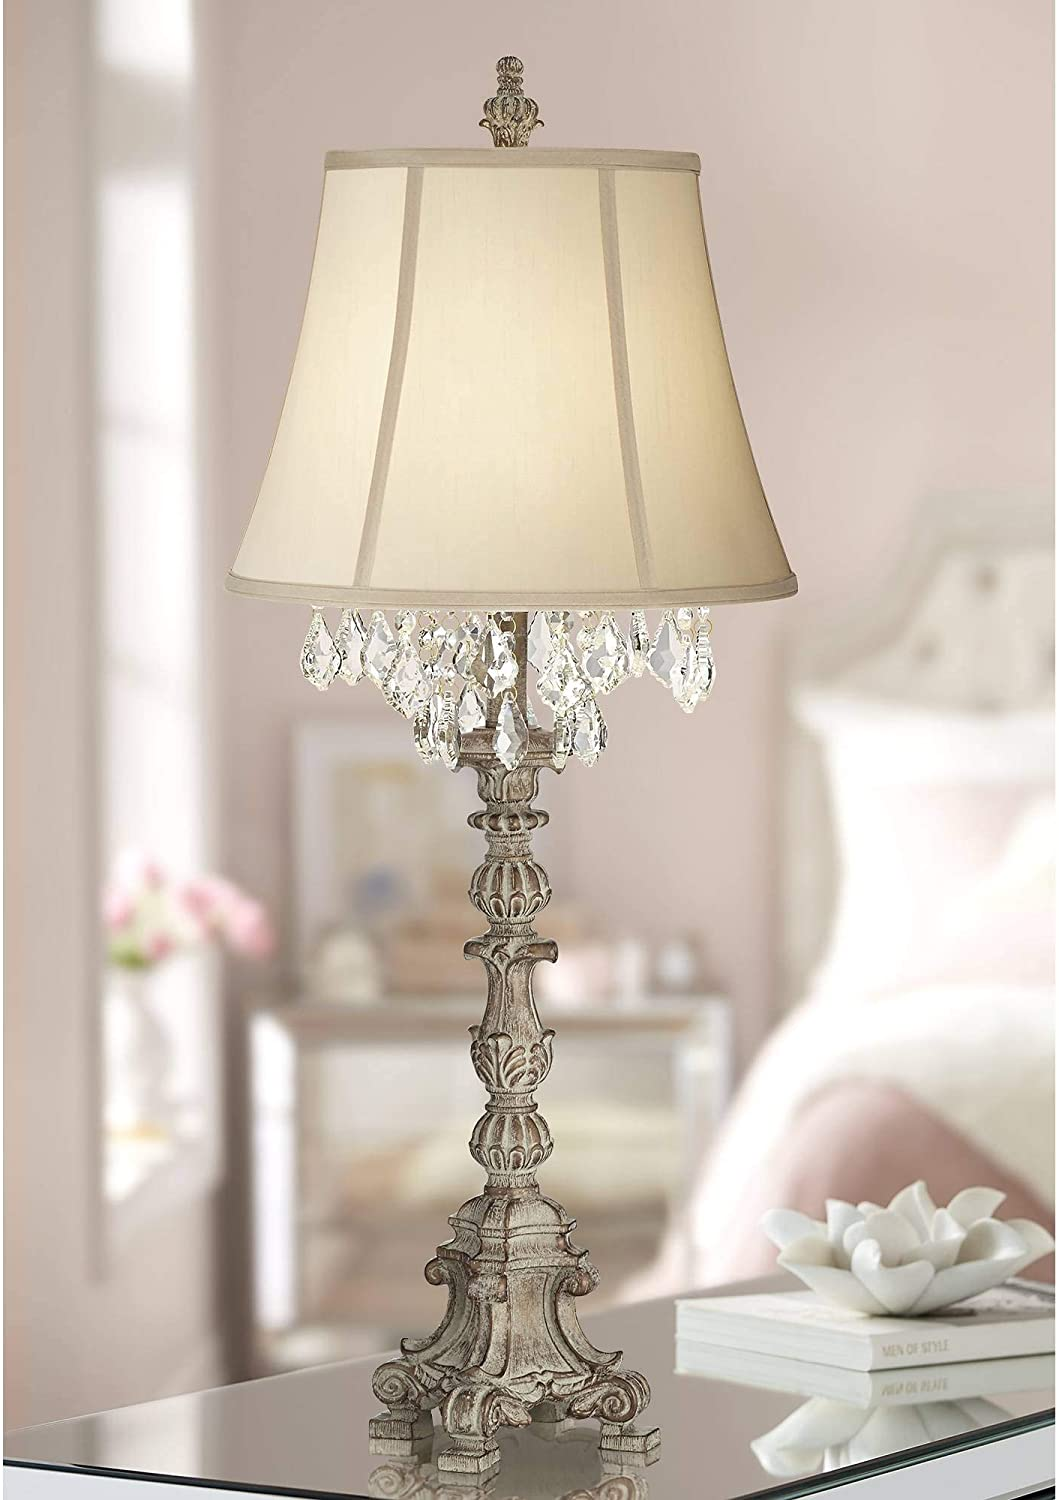 Duval Cottage Table Lamp Crystal Antique White Candlestick Beige Bell Shade for Living Room Family Bedroom Bedside - Barnes and Ivy